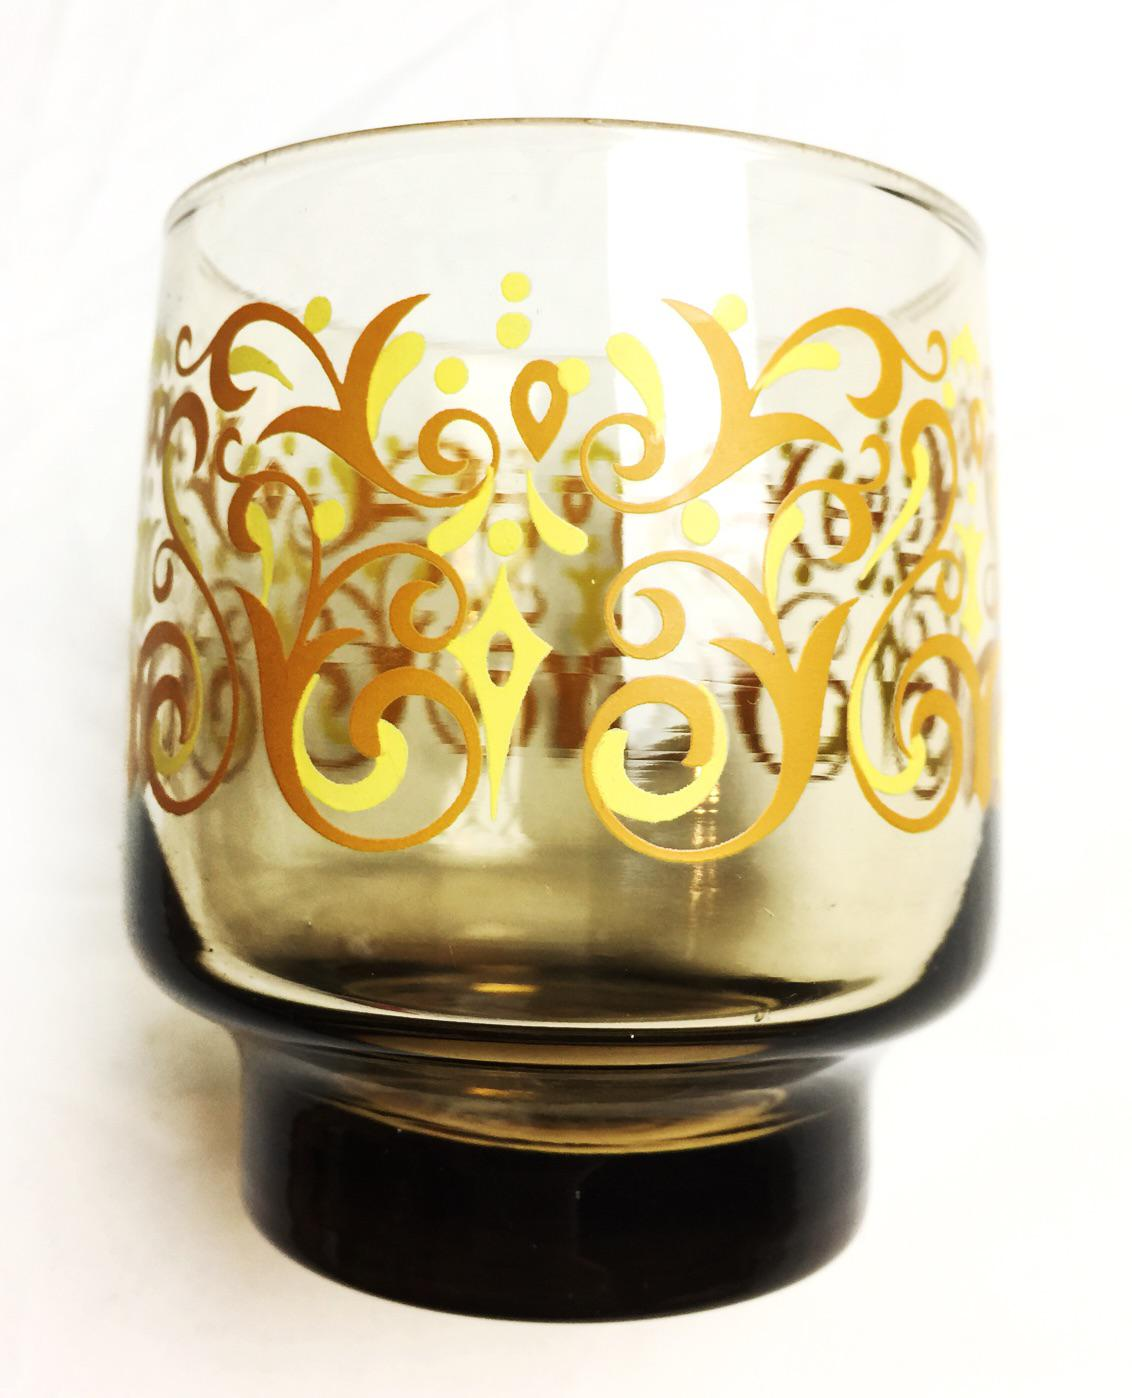 image of vintage 1960s amber colored libbey glassware with yellow and orange retro designs set - Libbey Glassware